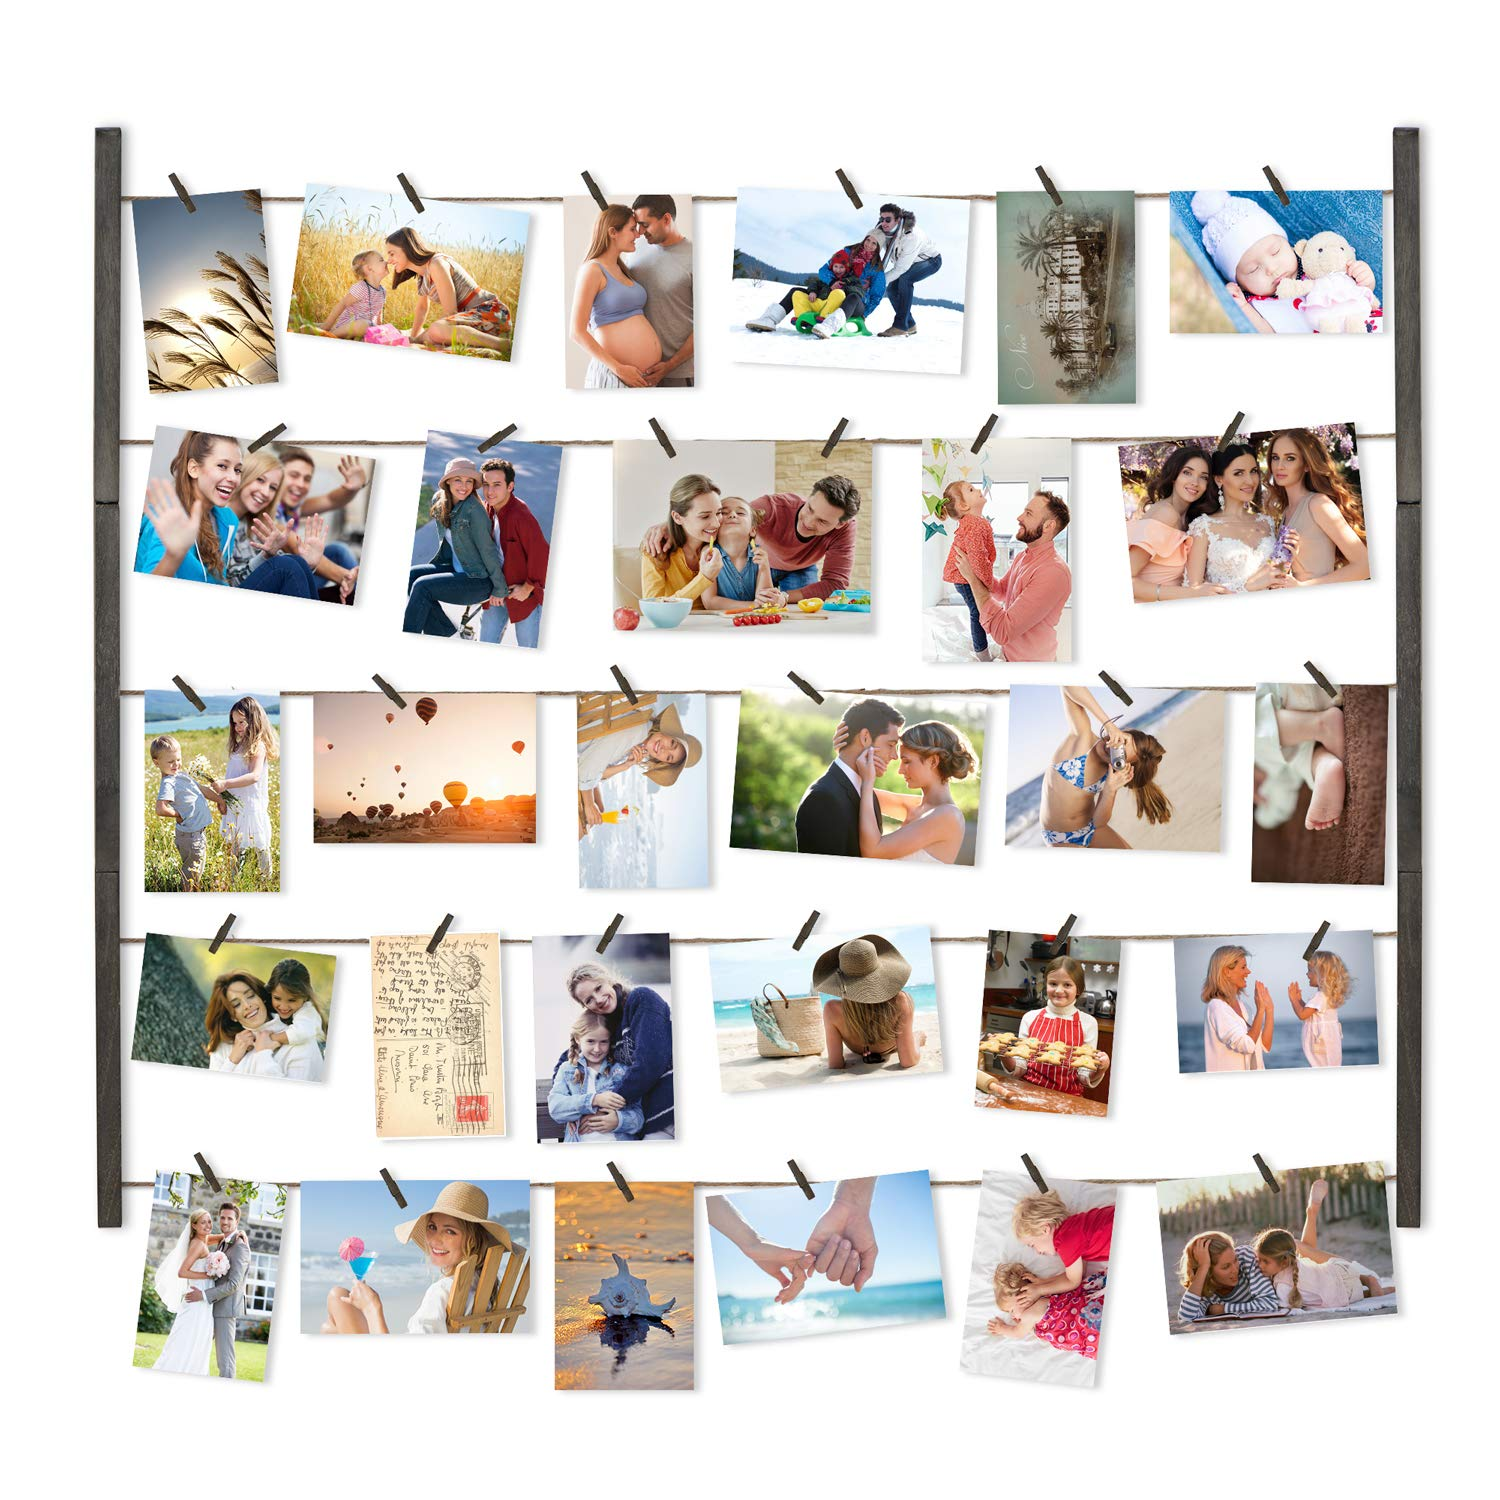 Love-KANKEI Wood Picture Photo Frame for Wall Decor 26×29 inch with 30 Clips and Ajustable Twines Collage Artworks Prints Multi Pictures Organizer and Hanging Display Frames Weathered Grey